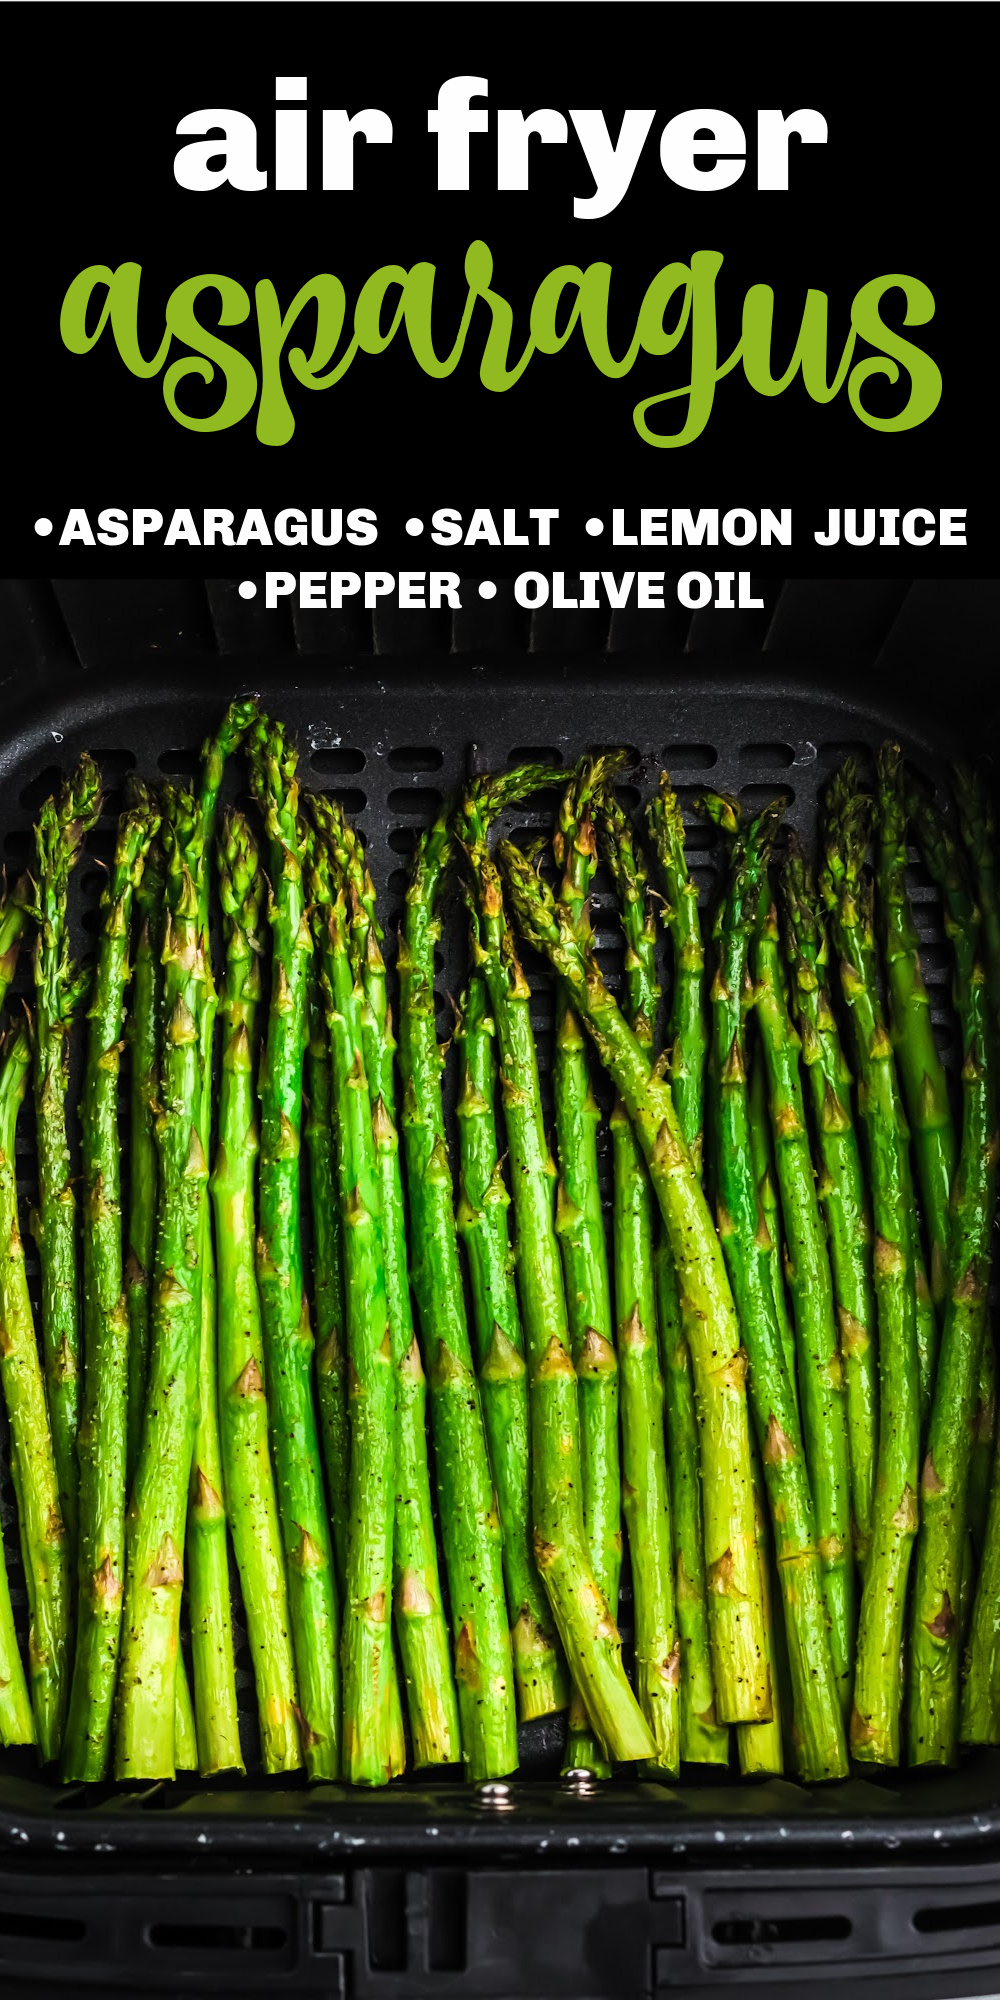 This Air Fryer Asparagus is the perfect side dish or appetizer. Made with asparagus, olive oil, sea salt, ground black pepper, and a dash of lemon before serving. It's the perfect, quick, air fryer recipe that's made in just 10 minutes.